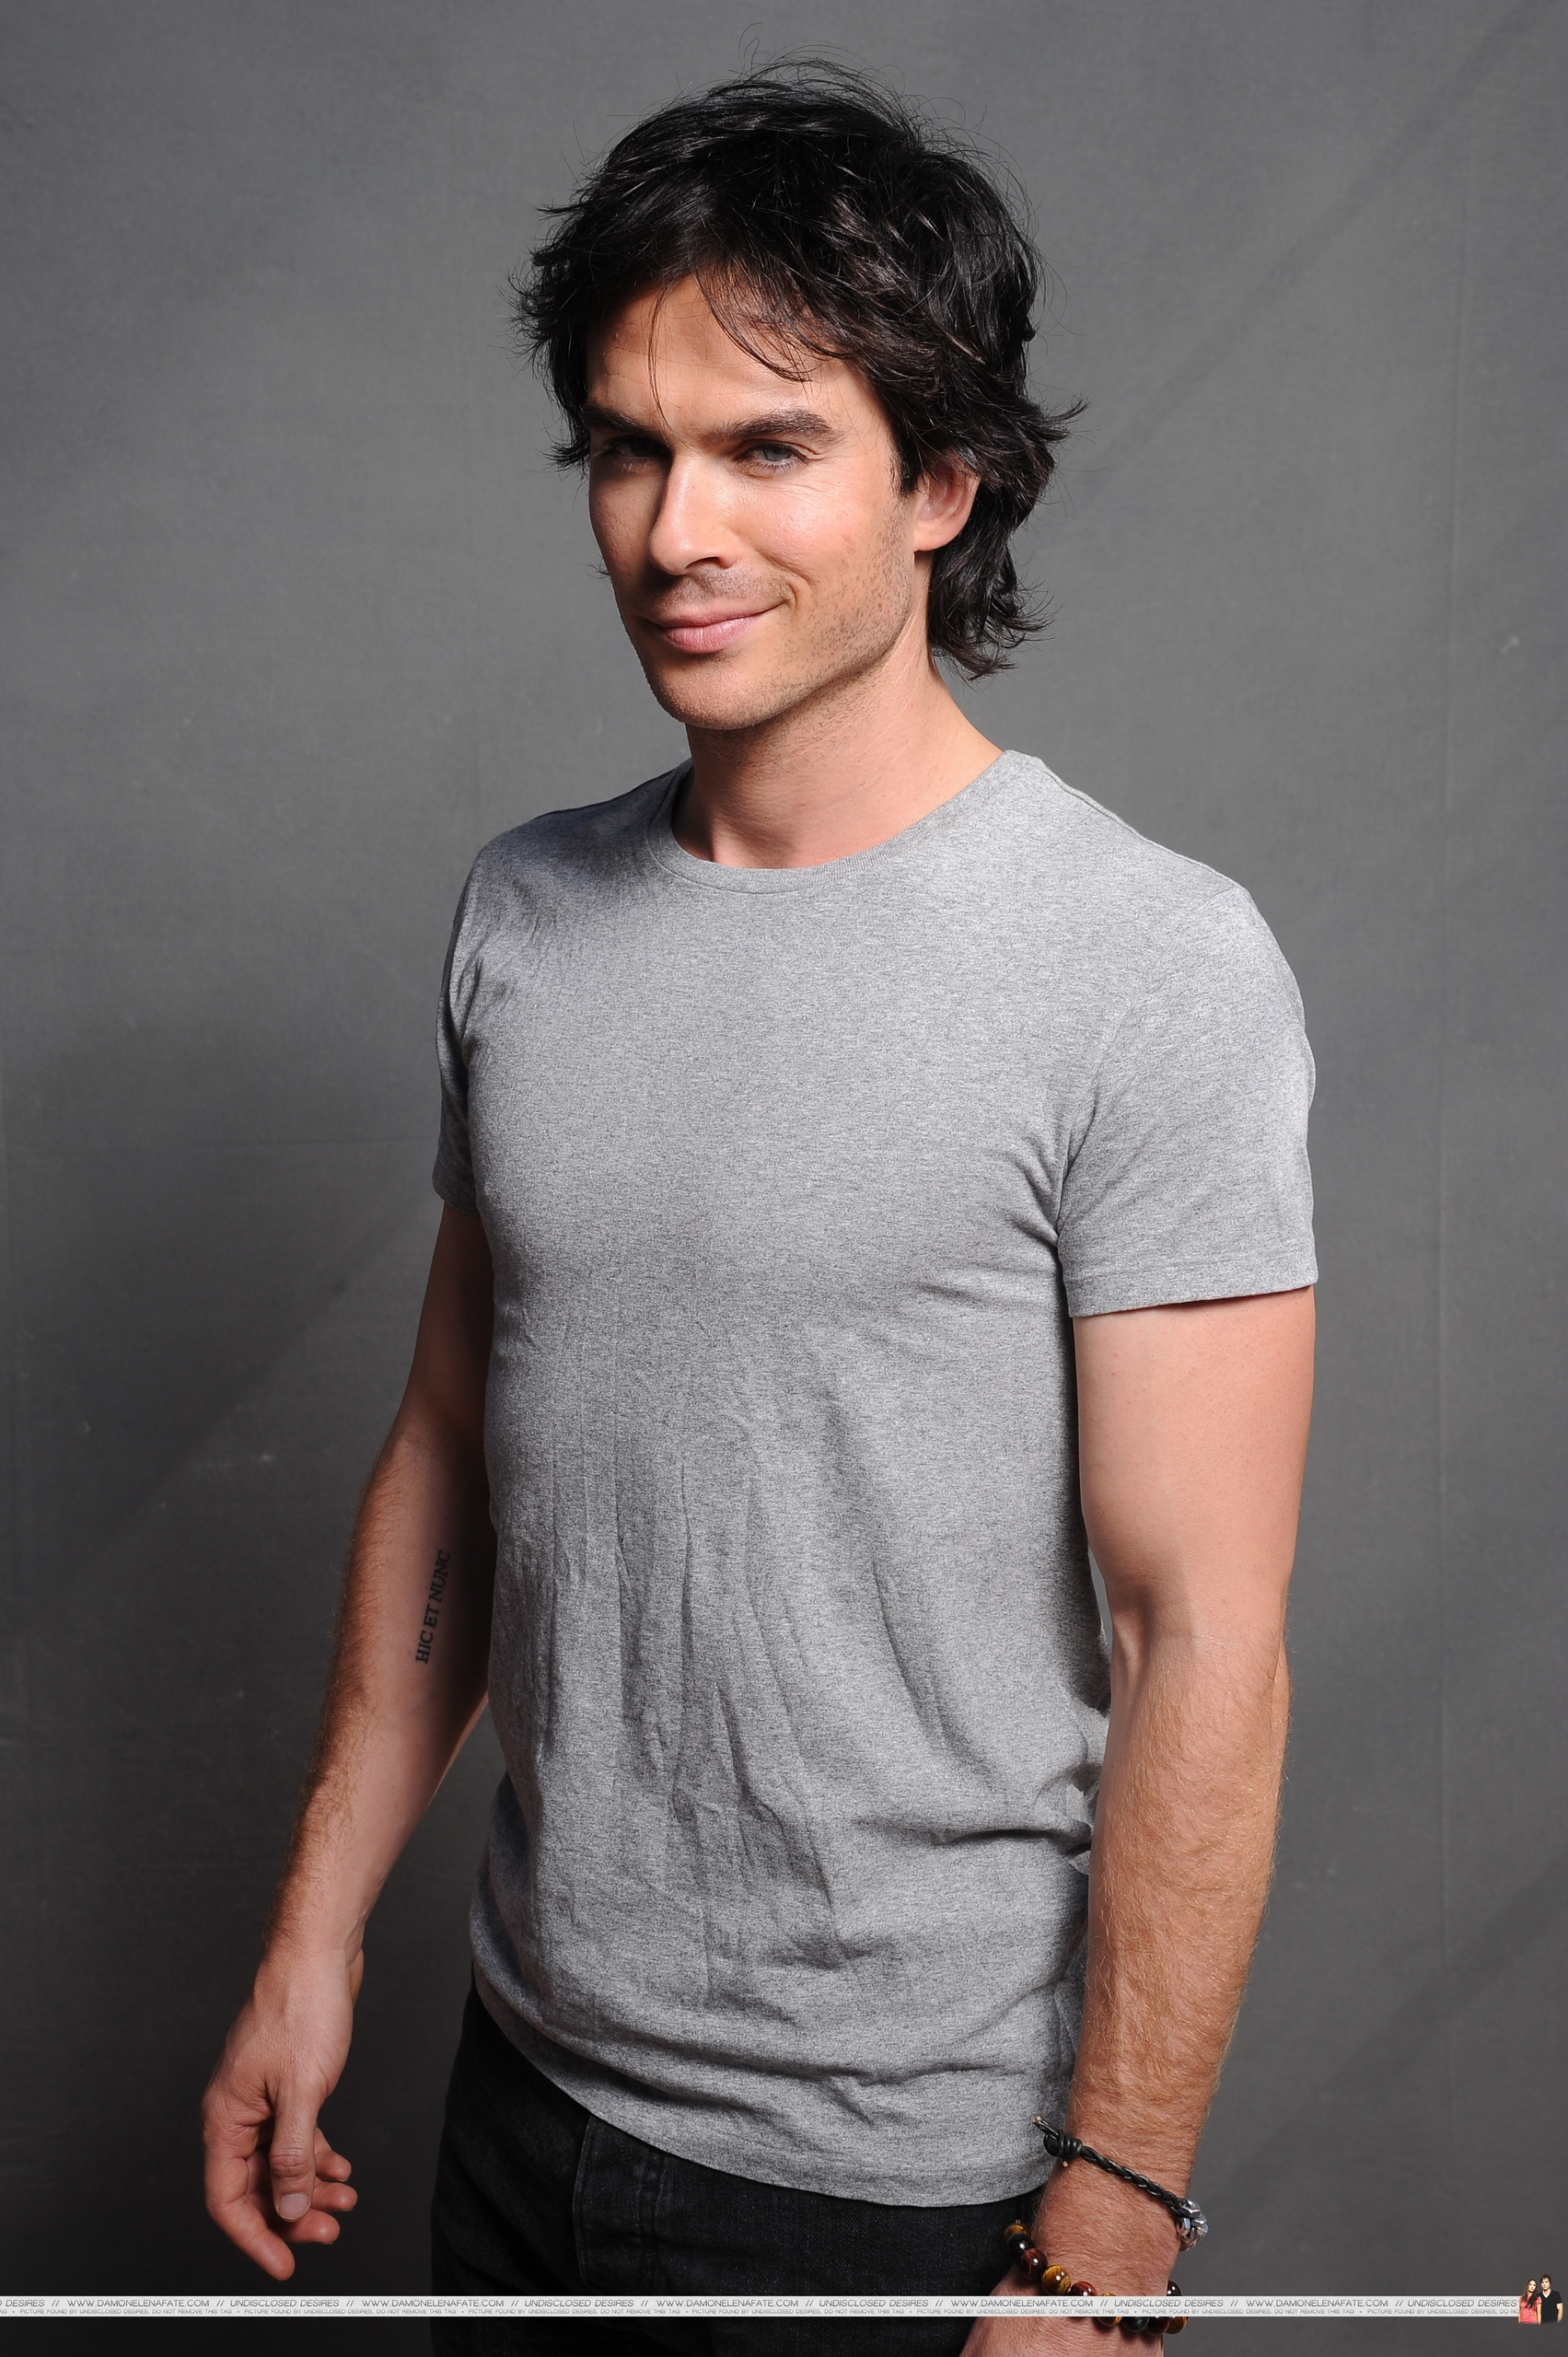 Ian Somerhalder Images Ian At Tca Hqღ Hd Wallpaper And Background